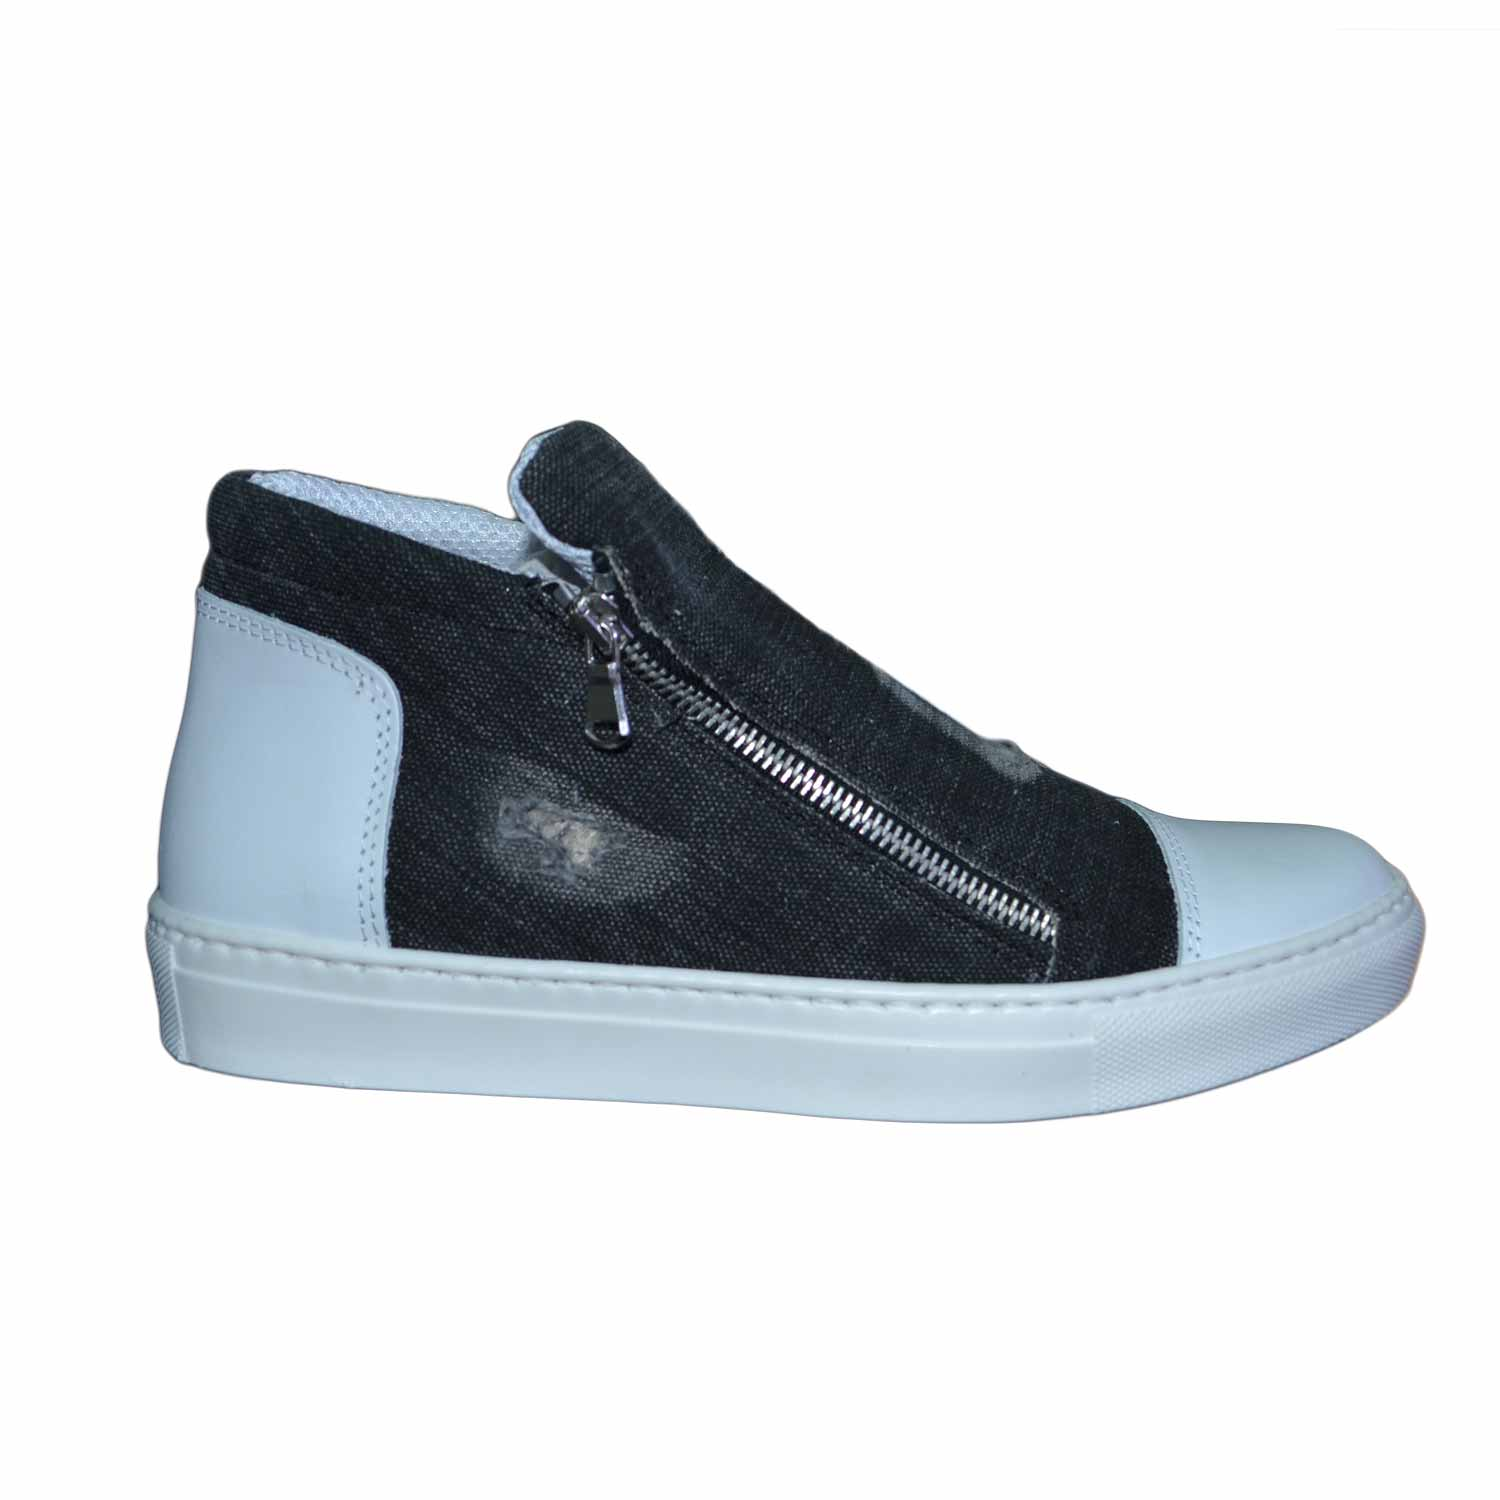 sneakers bassa uomo zip laterale rifinimenti in vera pelle made in italy nero  jeans.